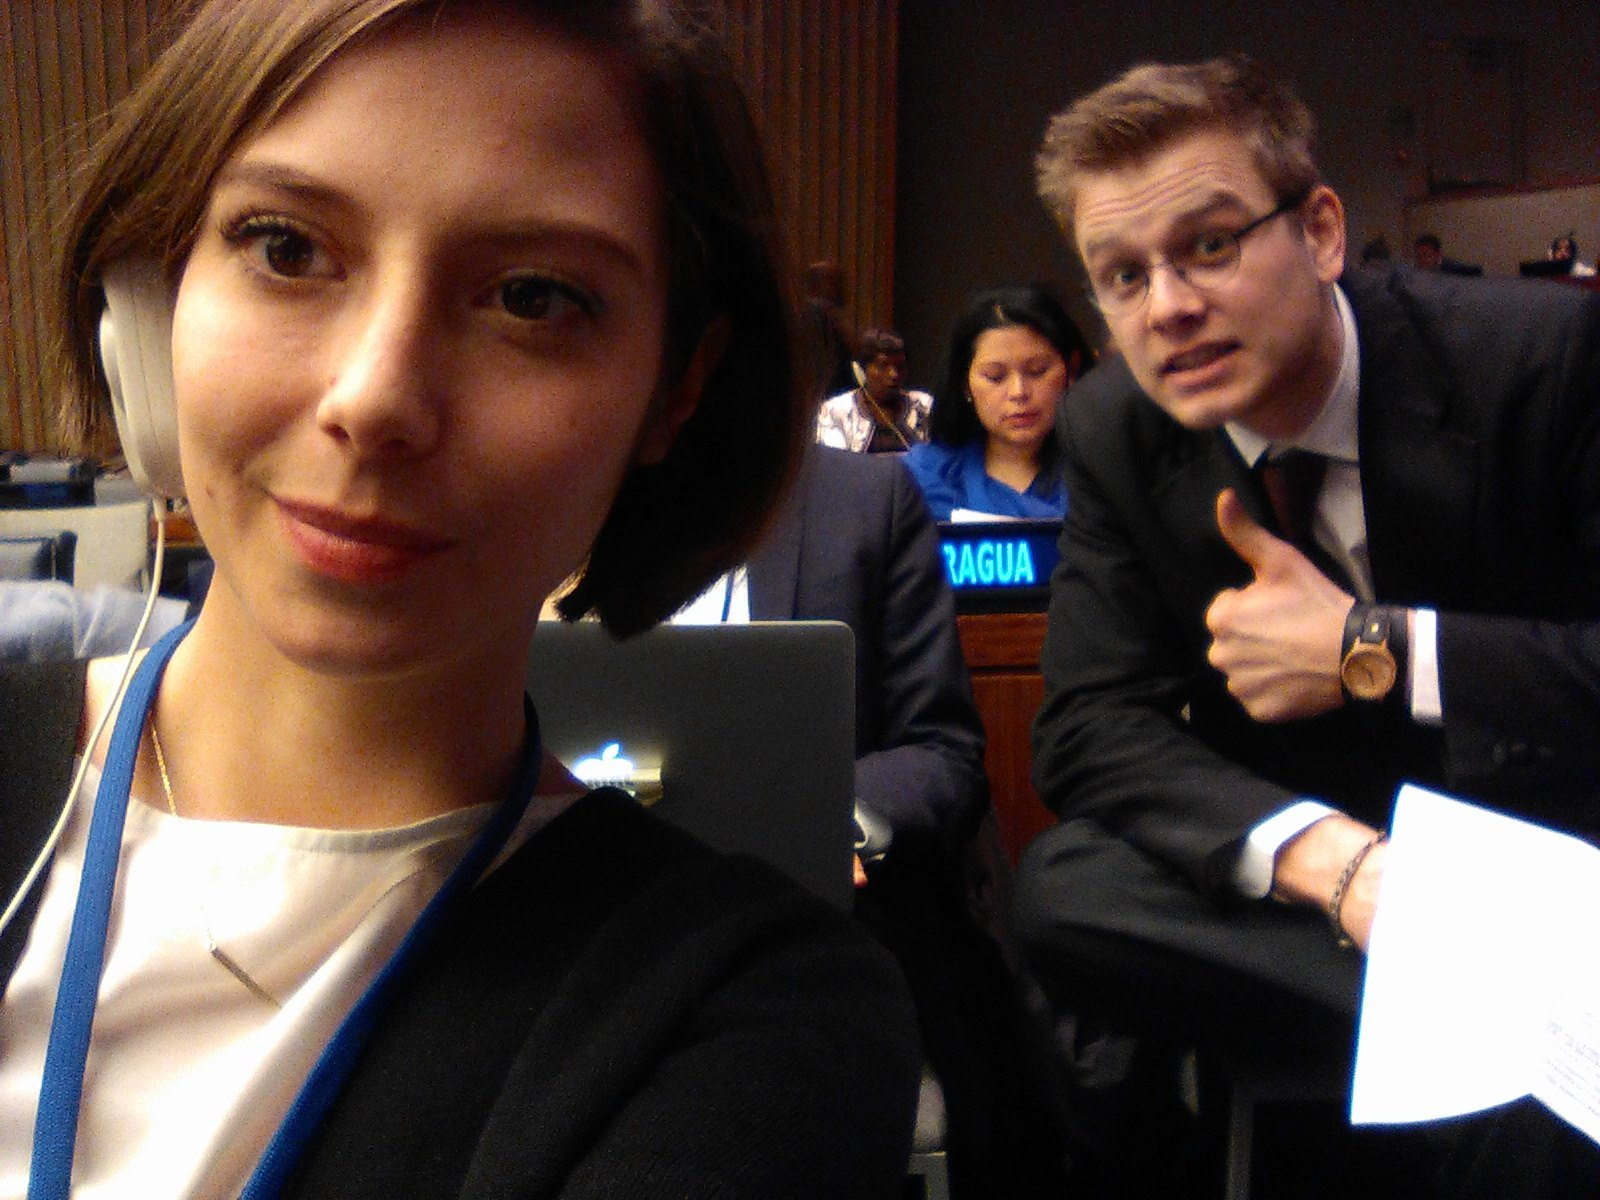 Excited: Only one speaker ahead of us! Watch our speech on youth & social inclusion live: https://t.co/qPxY6ATfGI #CSocD55 #youth2030 https://t.co/oMmX0on3uO